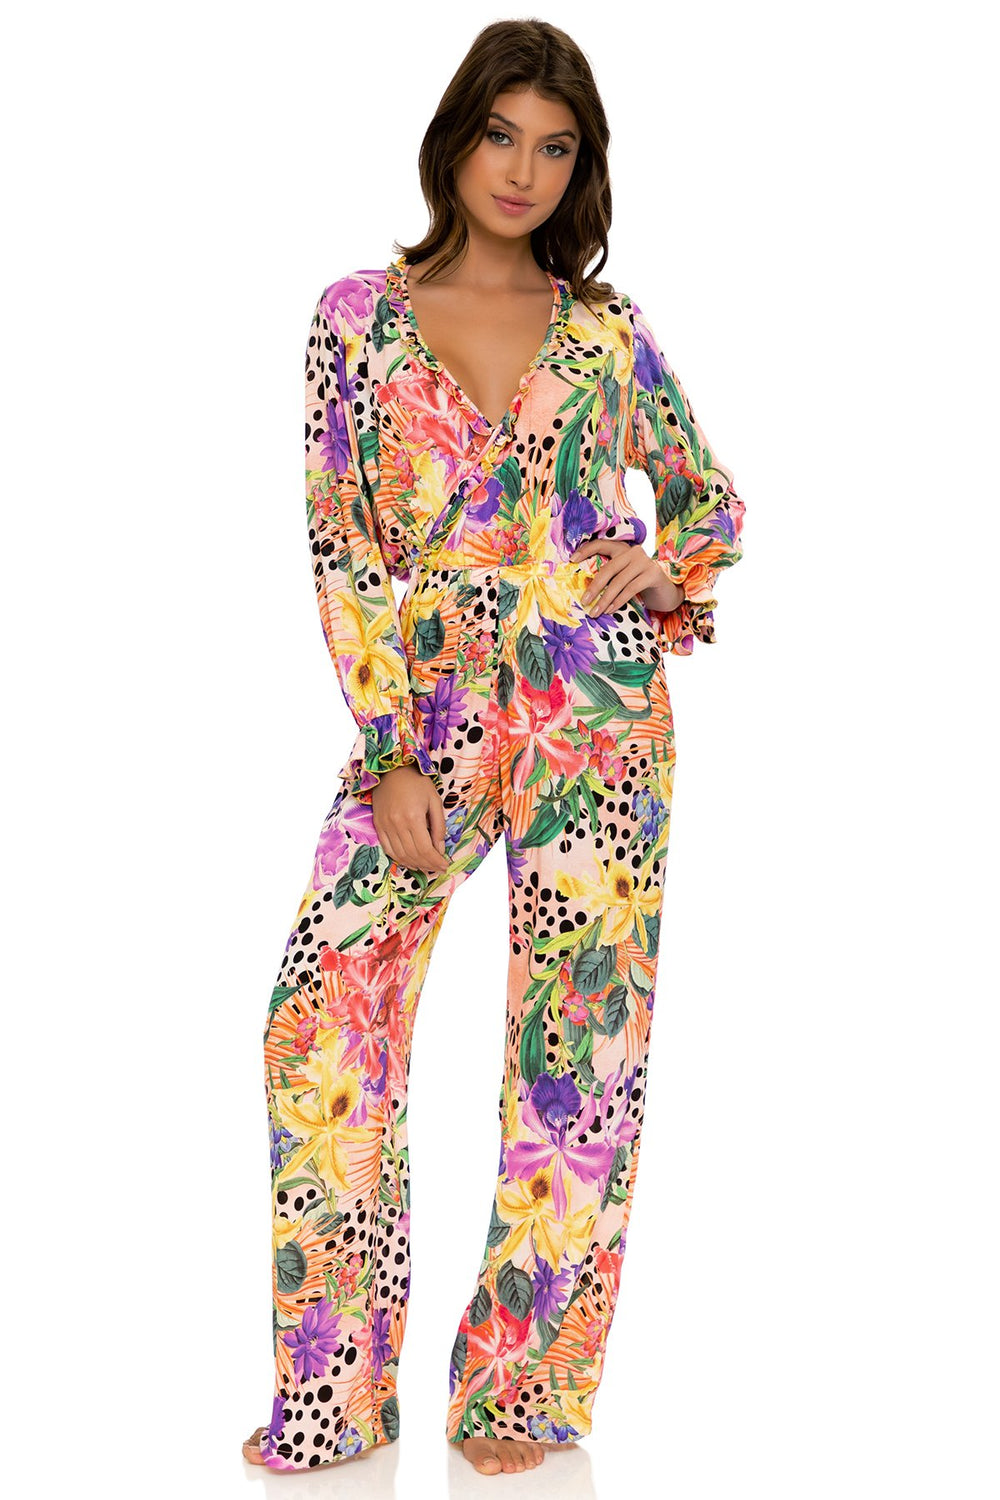 SHOCKING FLORALS - Ruffle Long Sleeve Jumpsuit • Multicolor